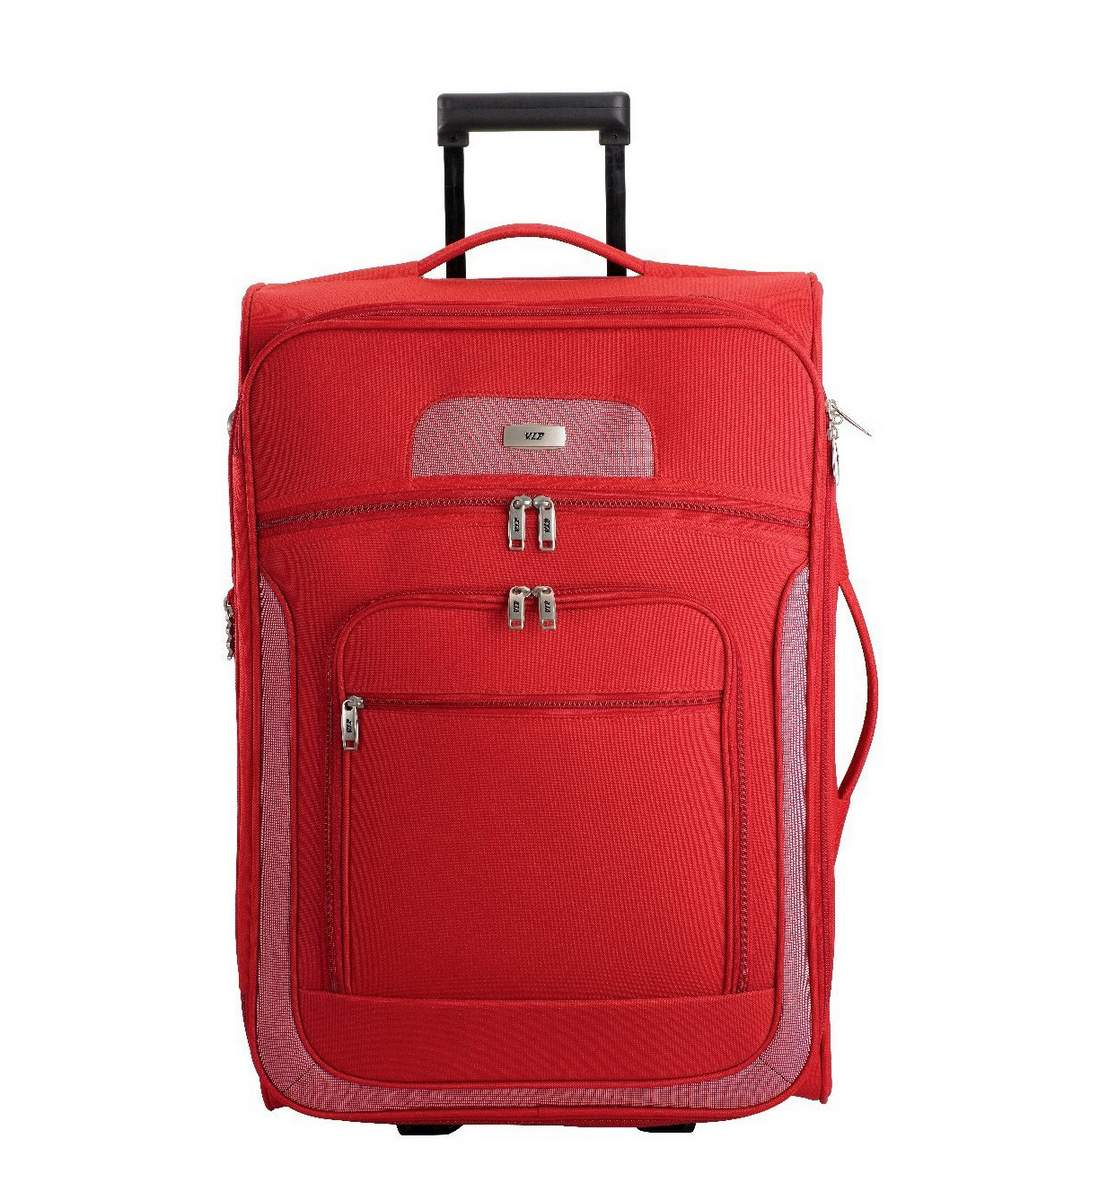 2393588498 VIP Oxford Plus 2W Cabin Size Luggage Bag-Sunrise Trading Co.